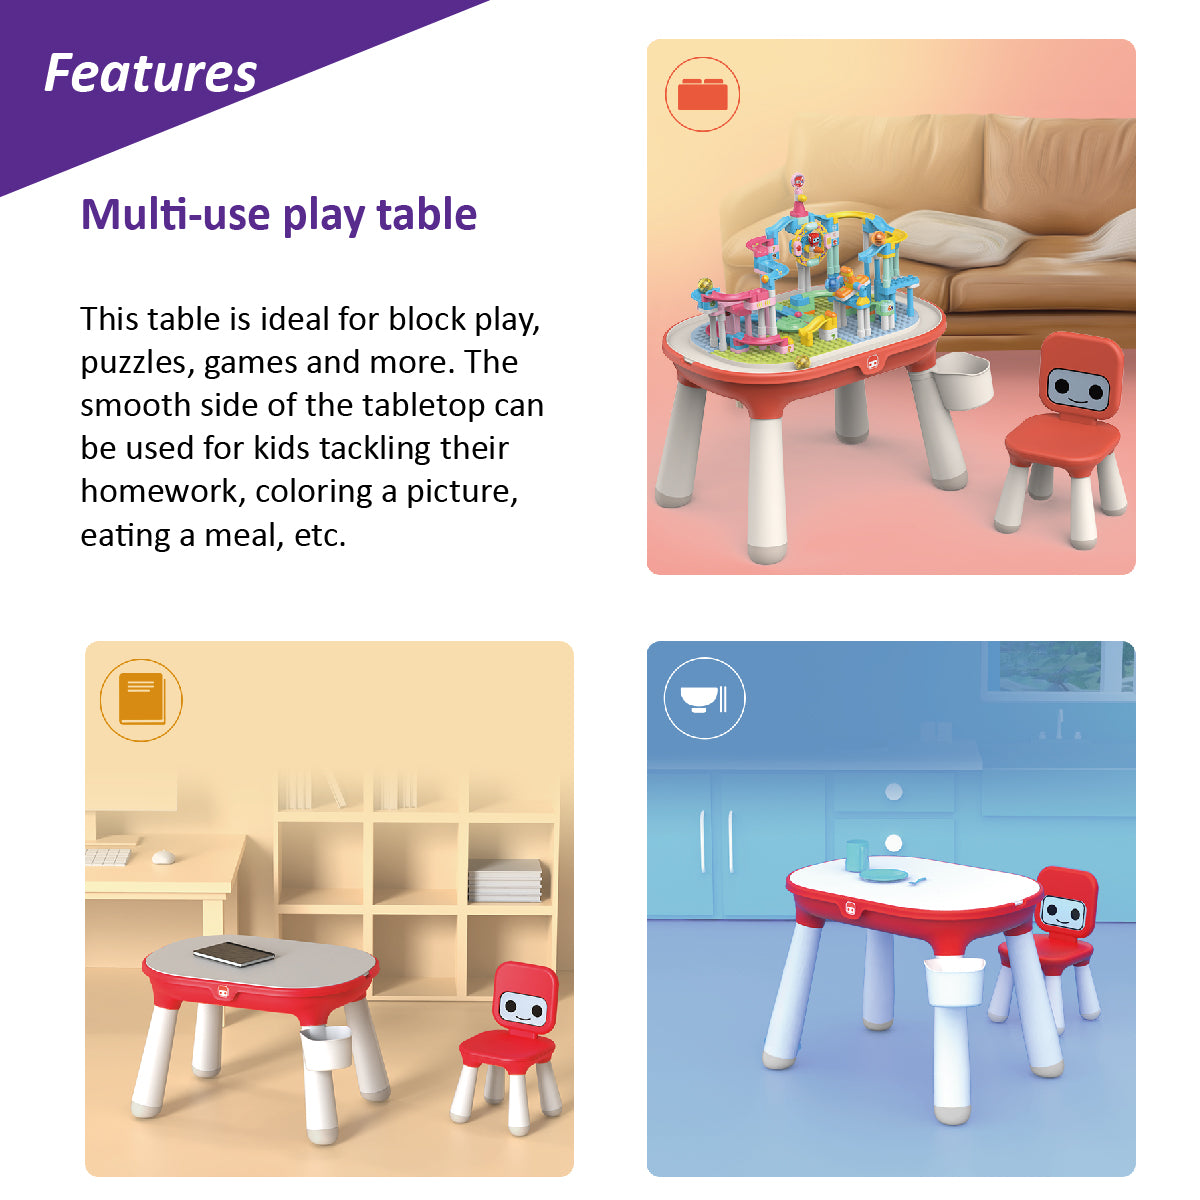 Multi-use play table (This table is ideal for block play, puzzles, games and more. The smooth side of the tabletop can be used for kids tackling their homework, coloring a picture, eating a meal, etc.)